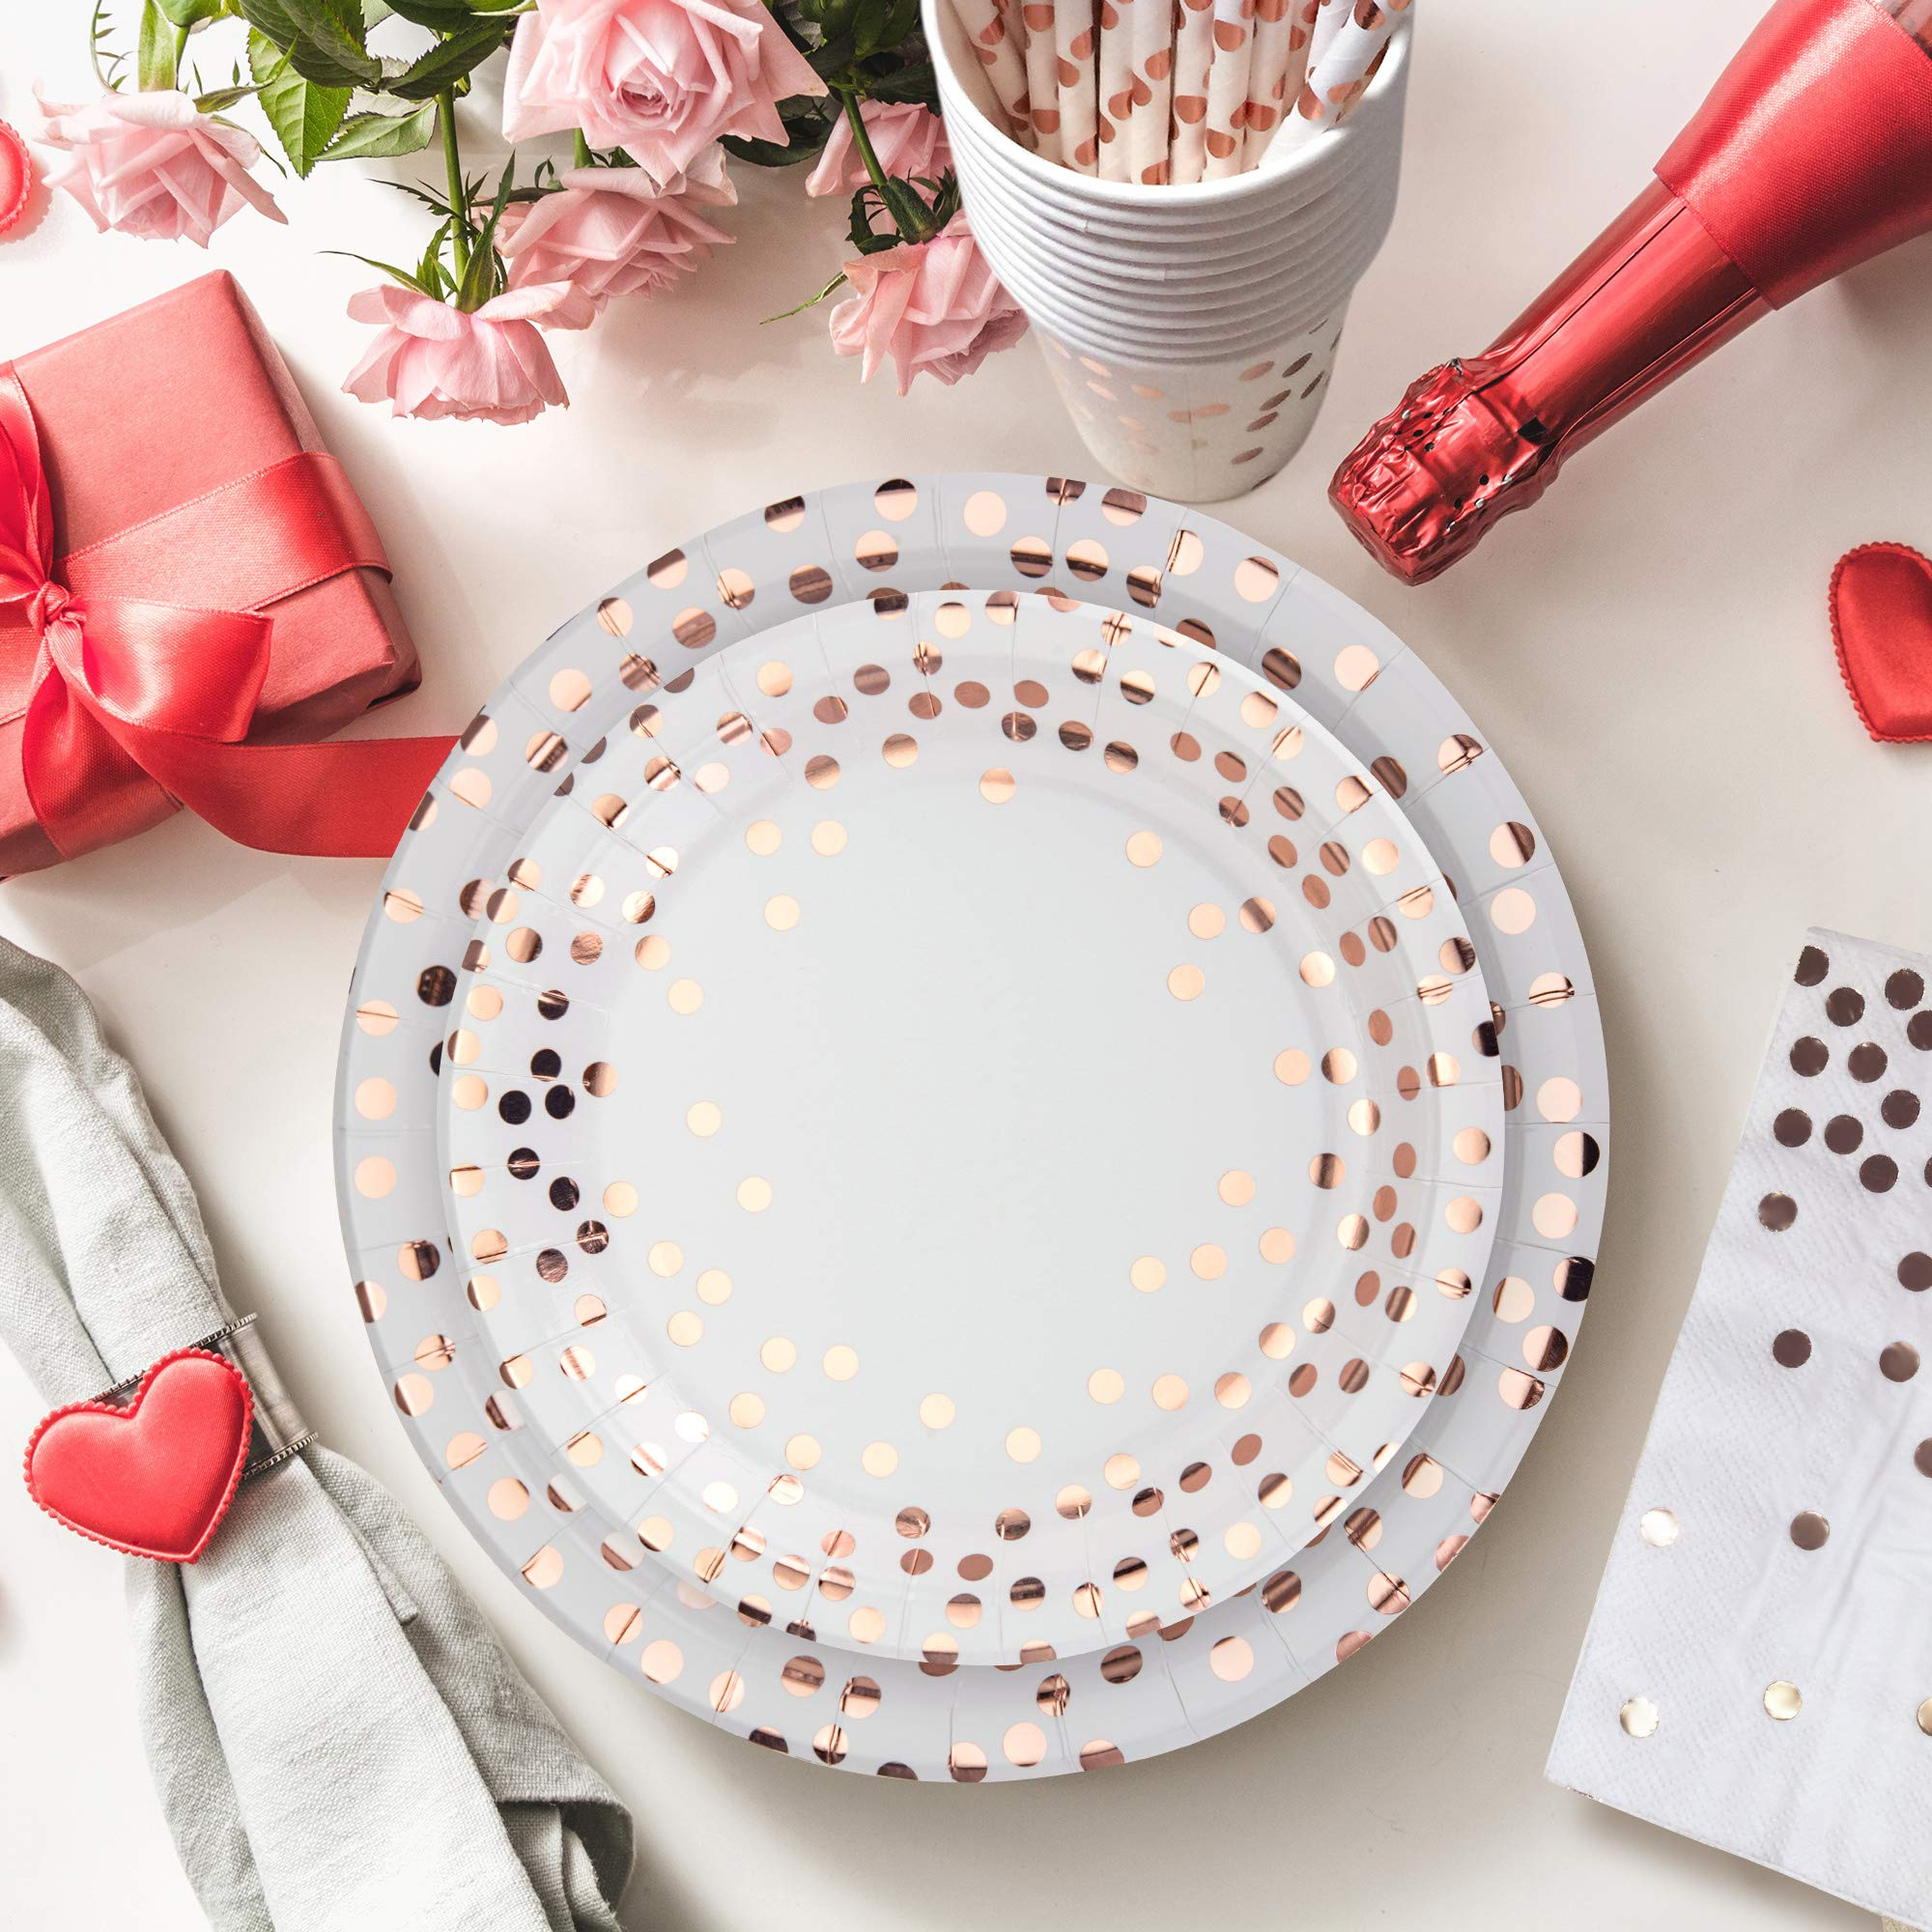 251PCS Rose Gold Disposable Paper Plates Party Supplies - Dinnerware Set with 50 Dessert Plates 50 Dinner Plates 50 9oz Cups 50 Straws 50 Napkins 1 Tablecloth Wedding Birthday Baby Shower